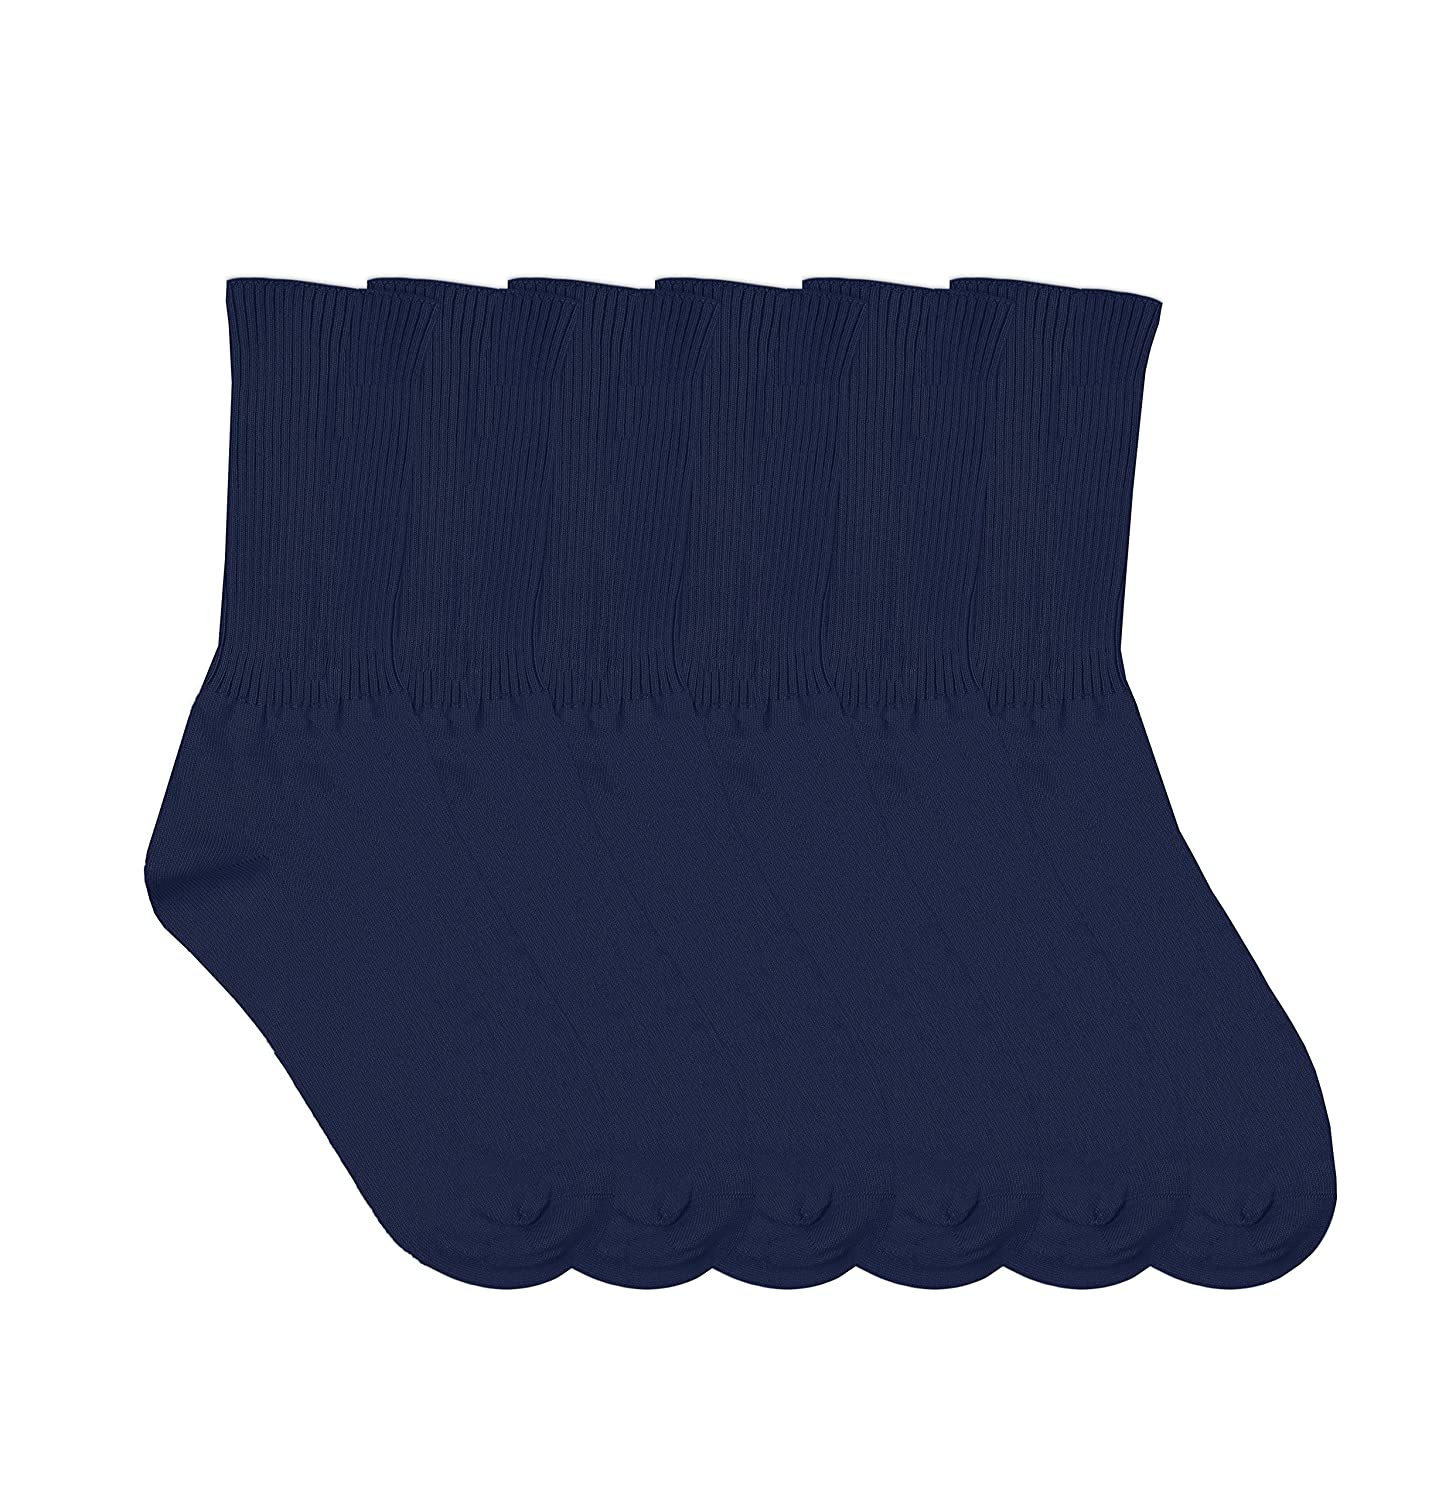 Jefferies Socks Boys Seamless School Uniform Rib Crew Socks 6 Pair Pack